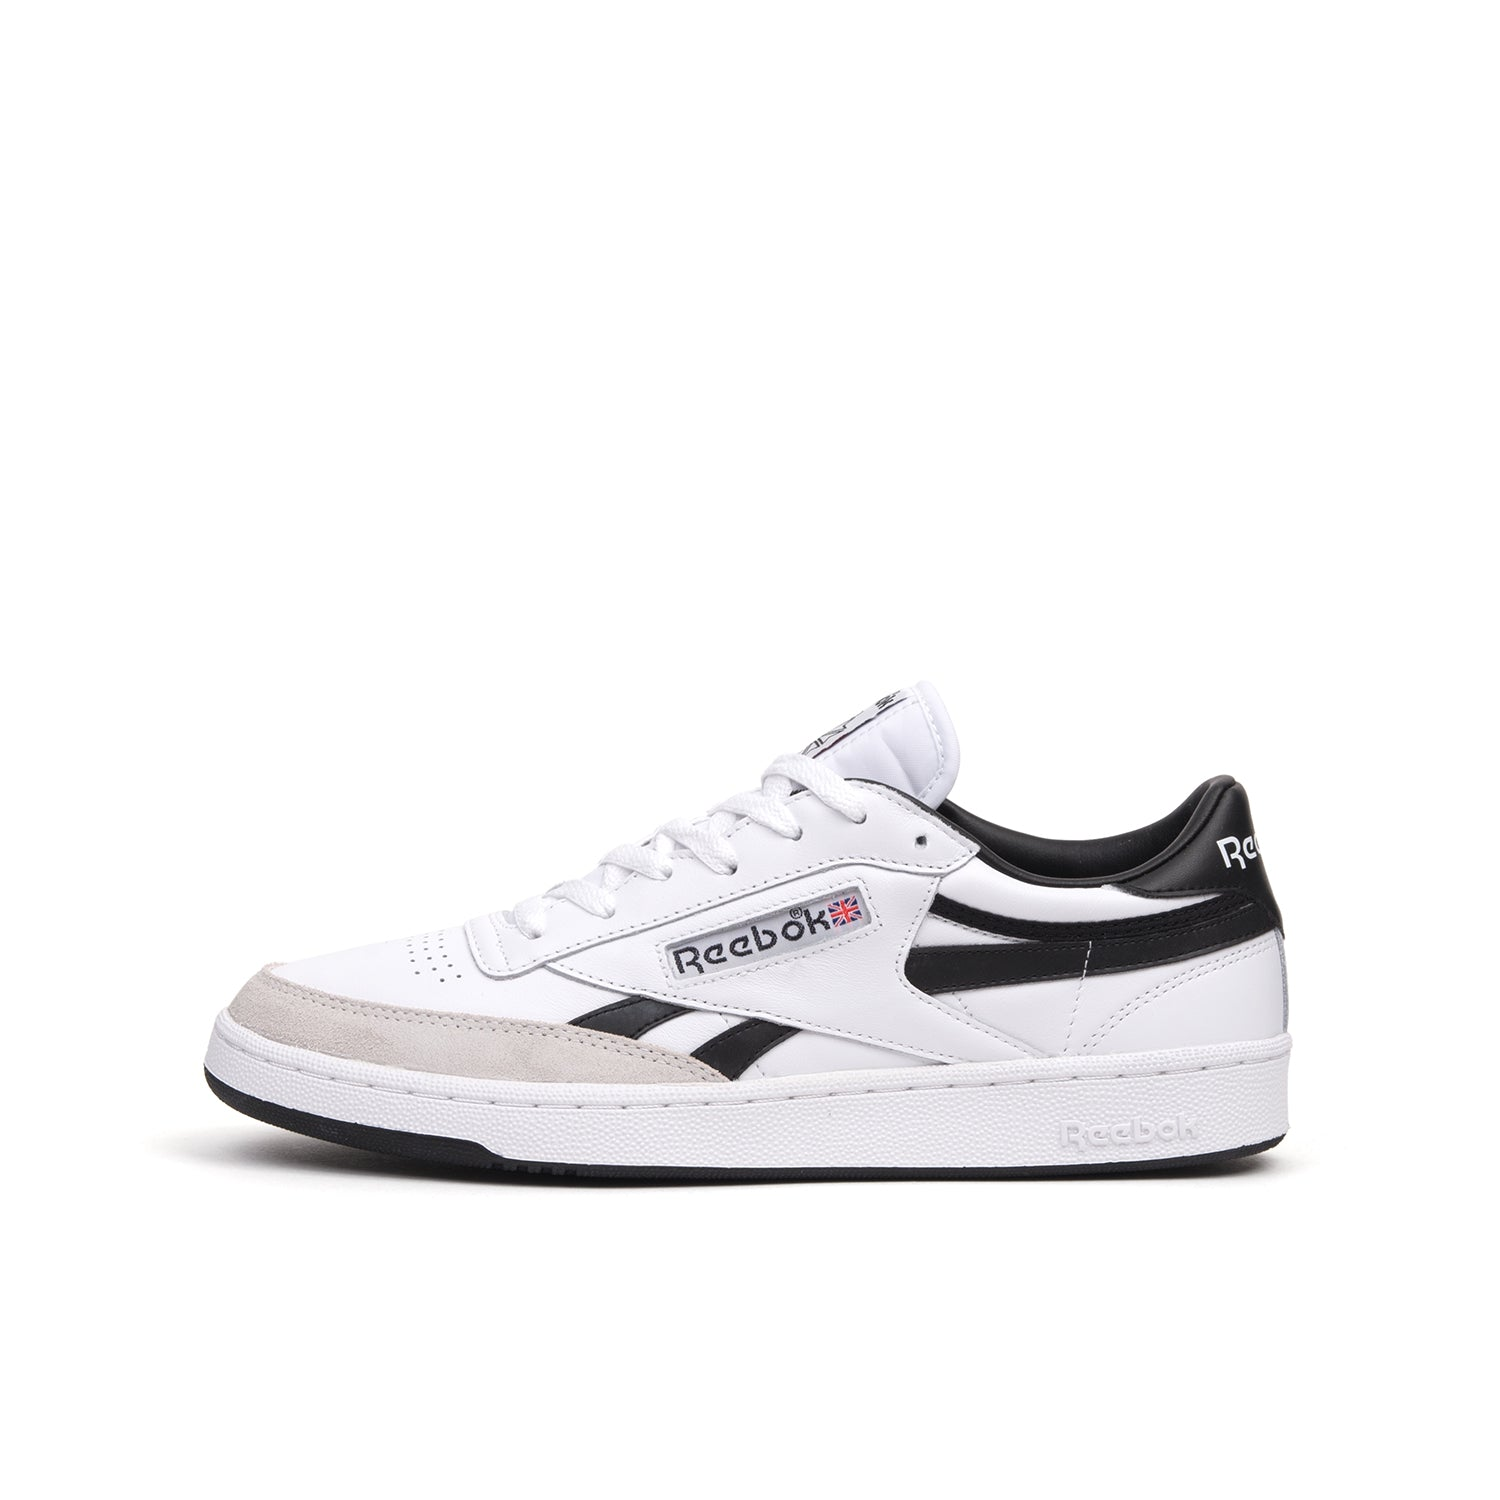 Reebok Revenge Plus TRC White Black. Tap to expand 3ad7db258b6